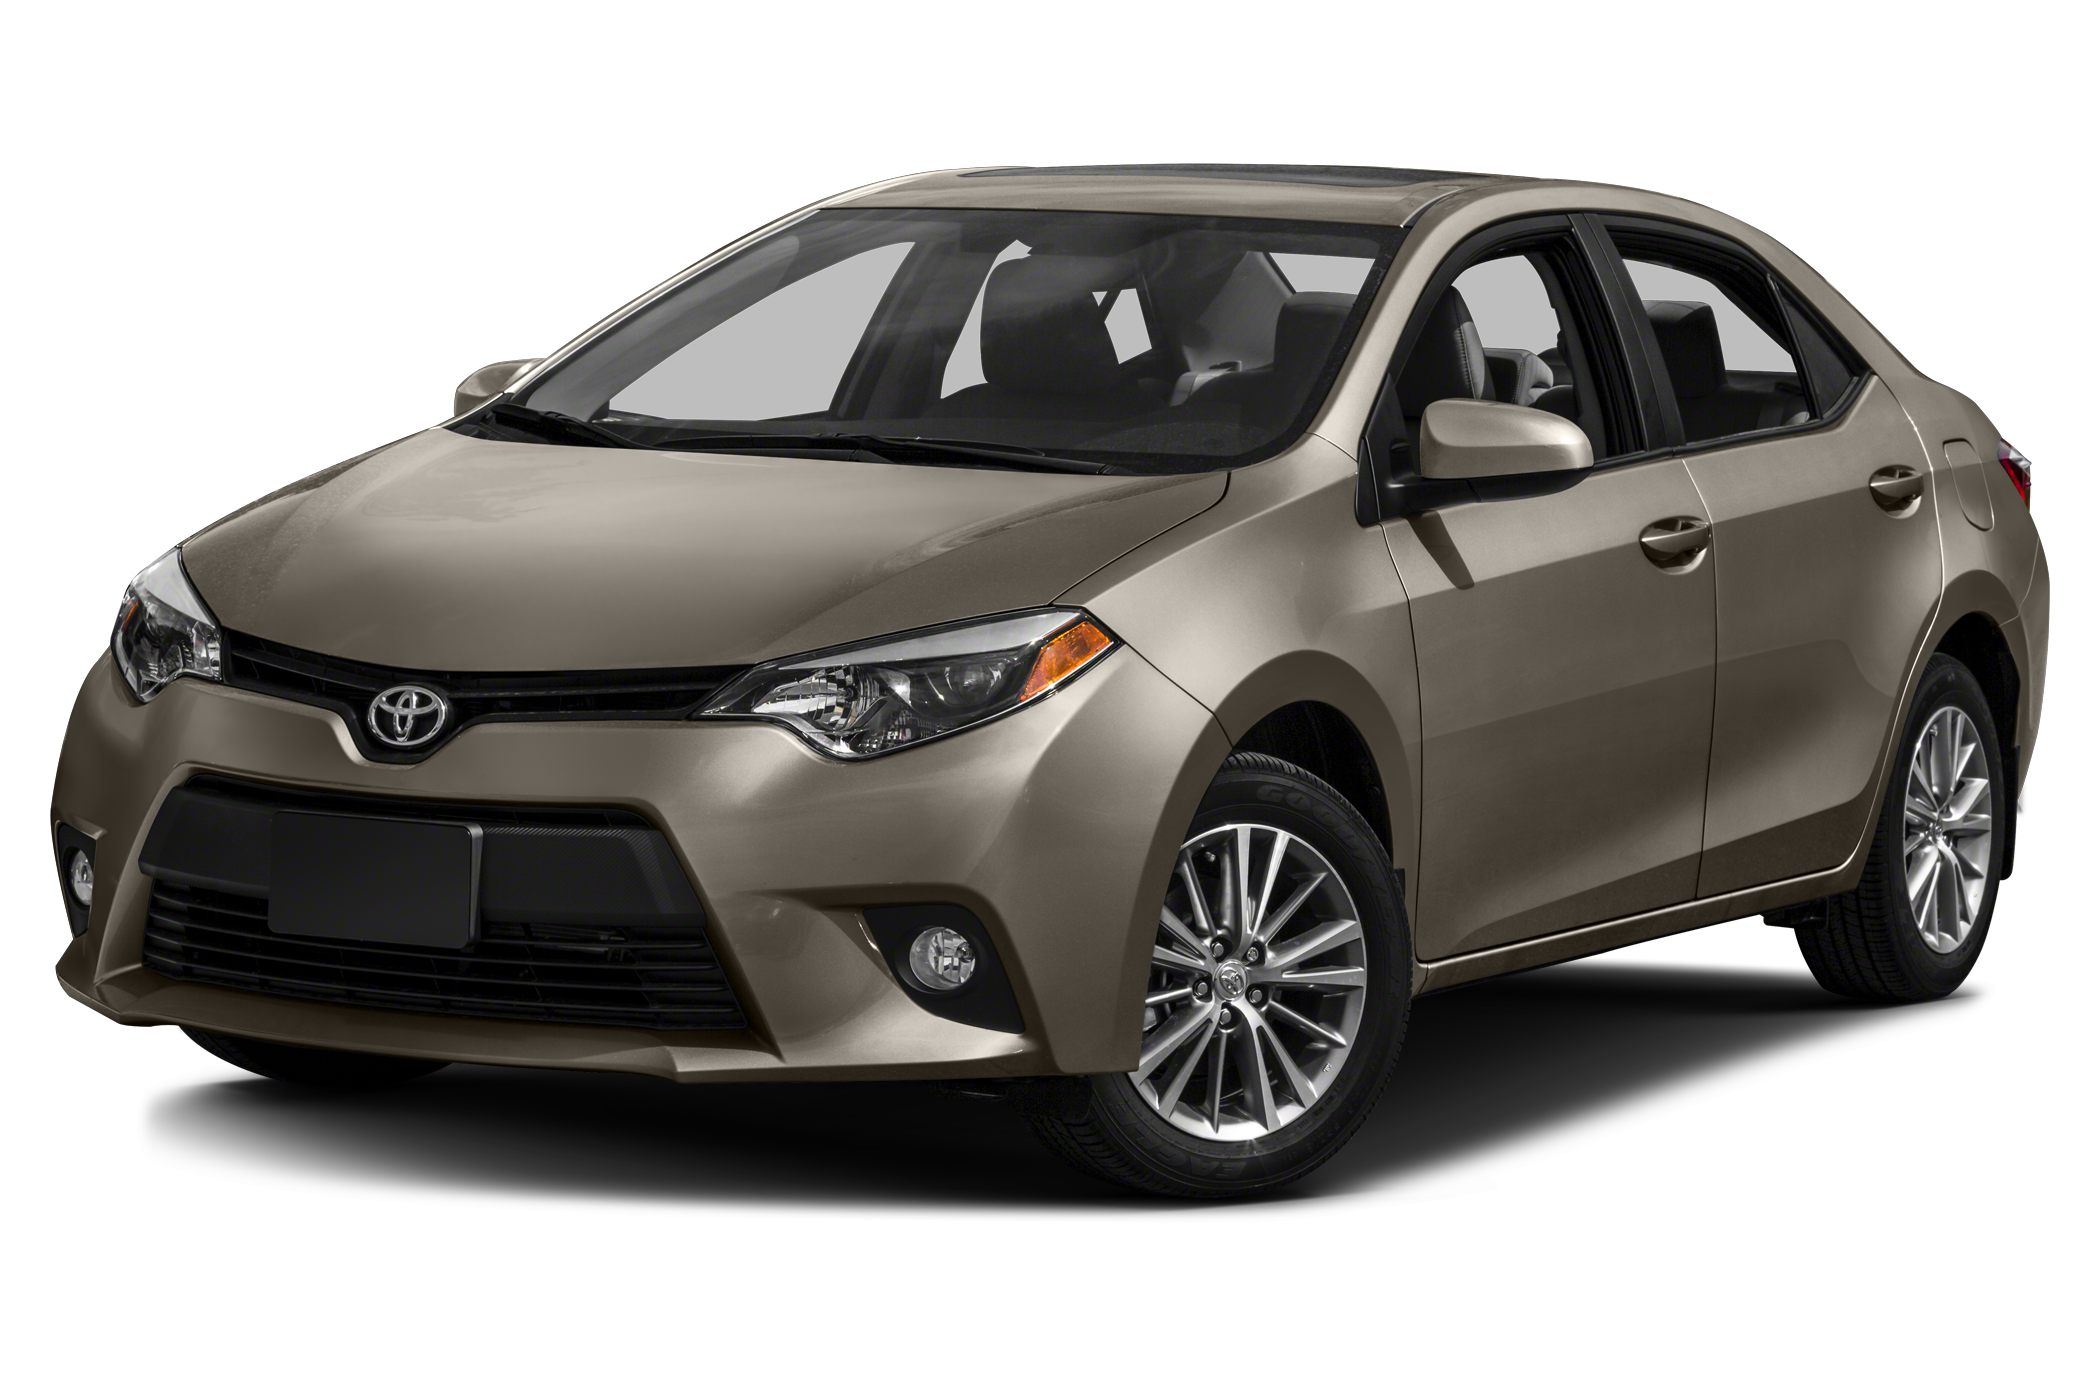 2015 Toyota Corolla LE Sedan for sale in Laconia for $17,851 with 10 miles